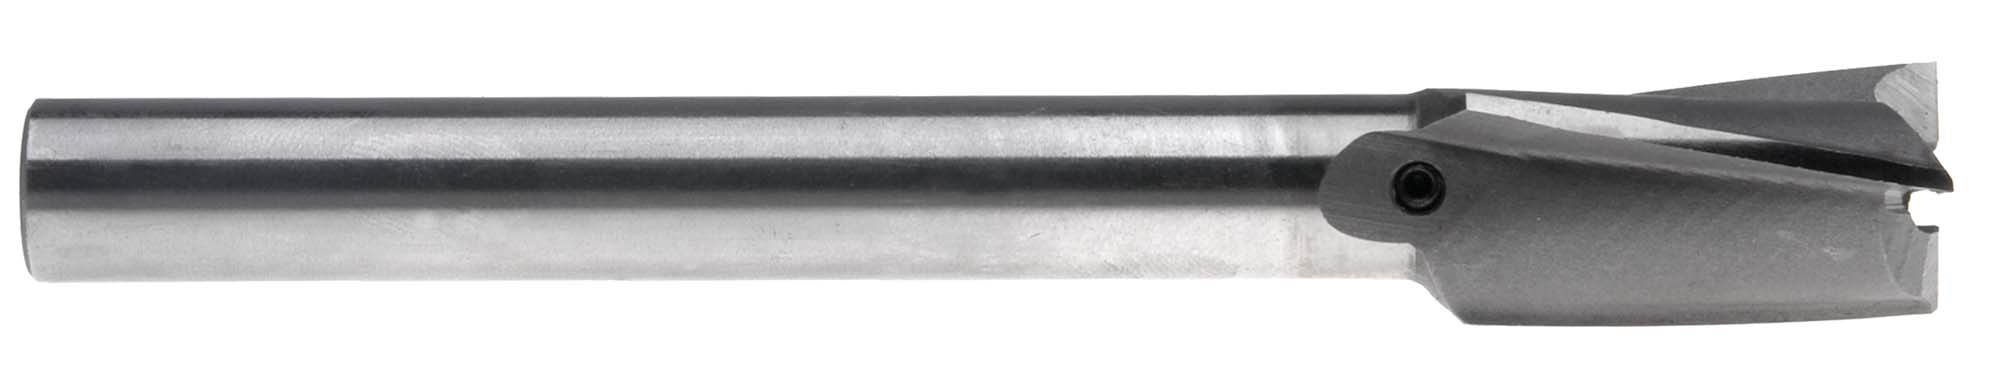 "1-3/16"" Straight Shank Counterbore, Interchangeable Pilot Type, High Speed Steel"